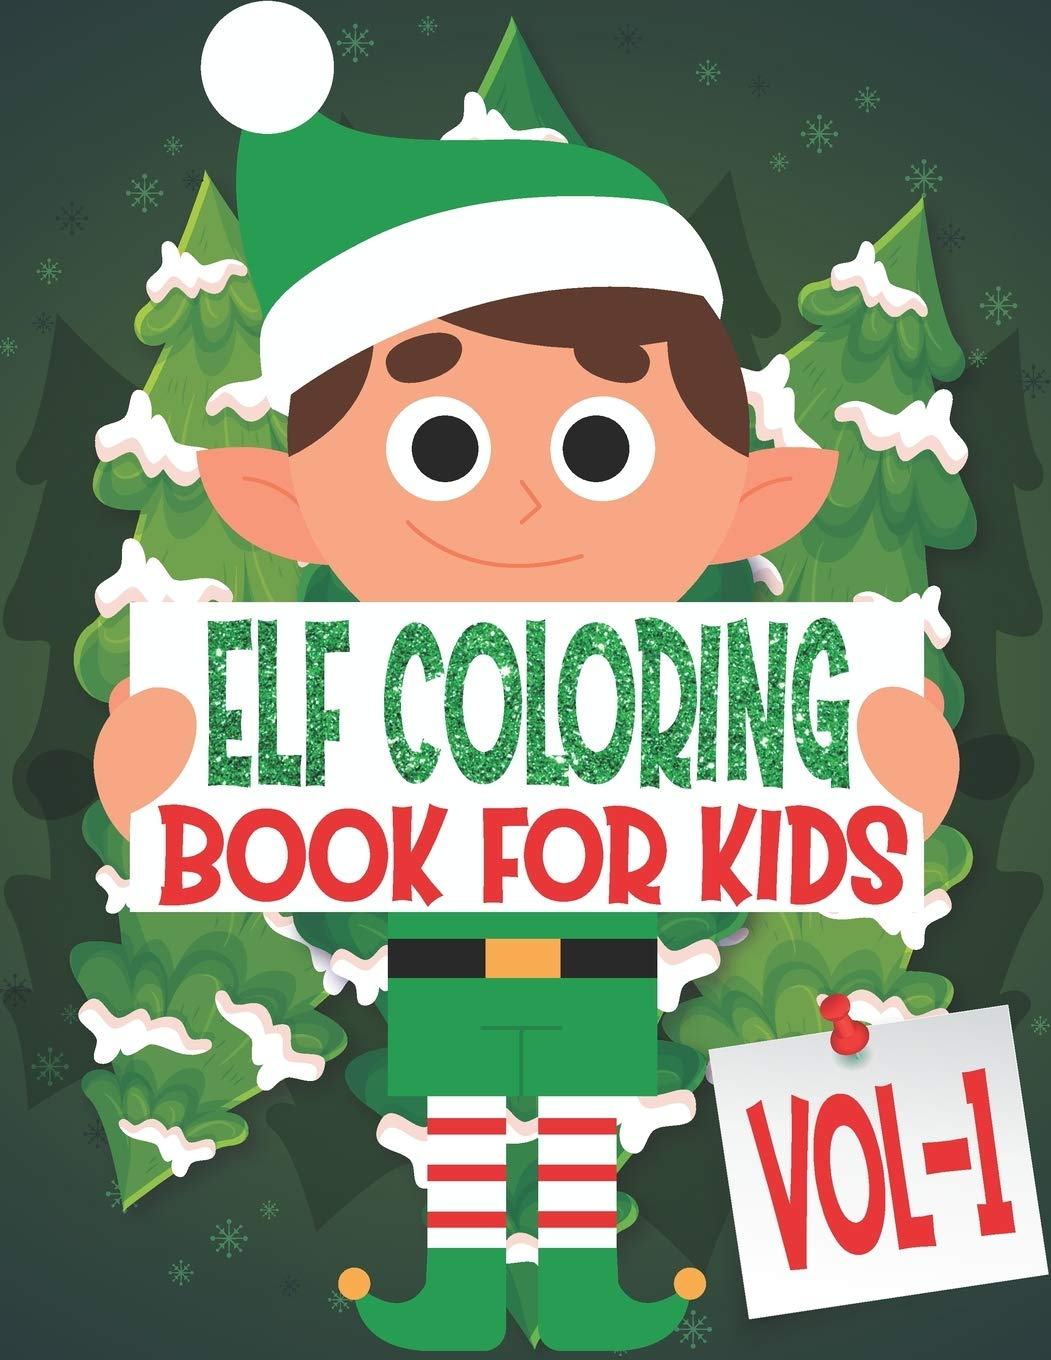 elf coloring book for kids volume 1 85 pages one side christmas elf coloring pages for kids toddler children perfect for kids age 4 18 years old pages to color in santa elf coloring book for kids volume 1